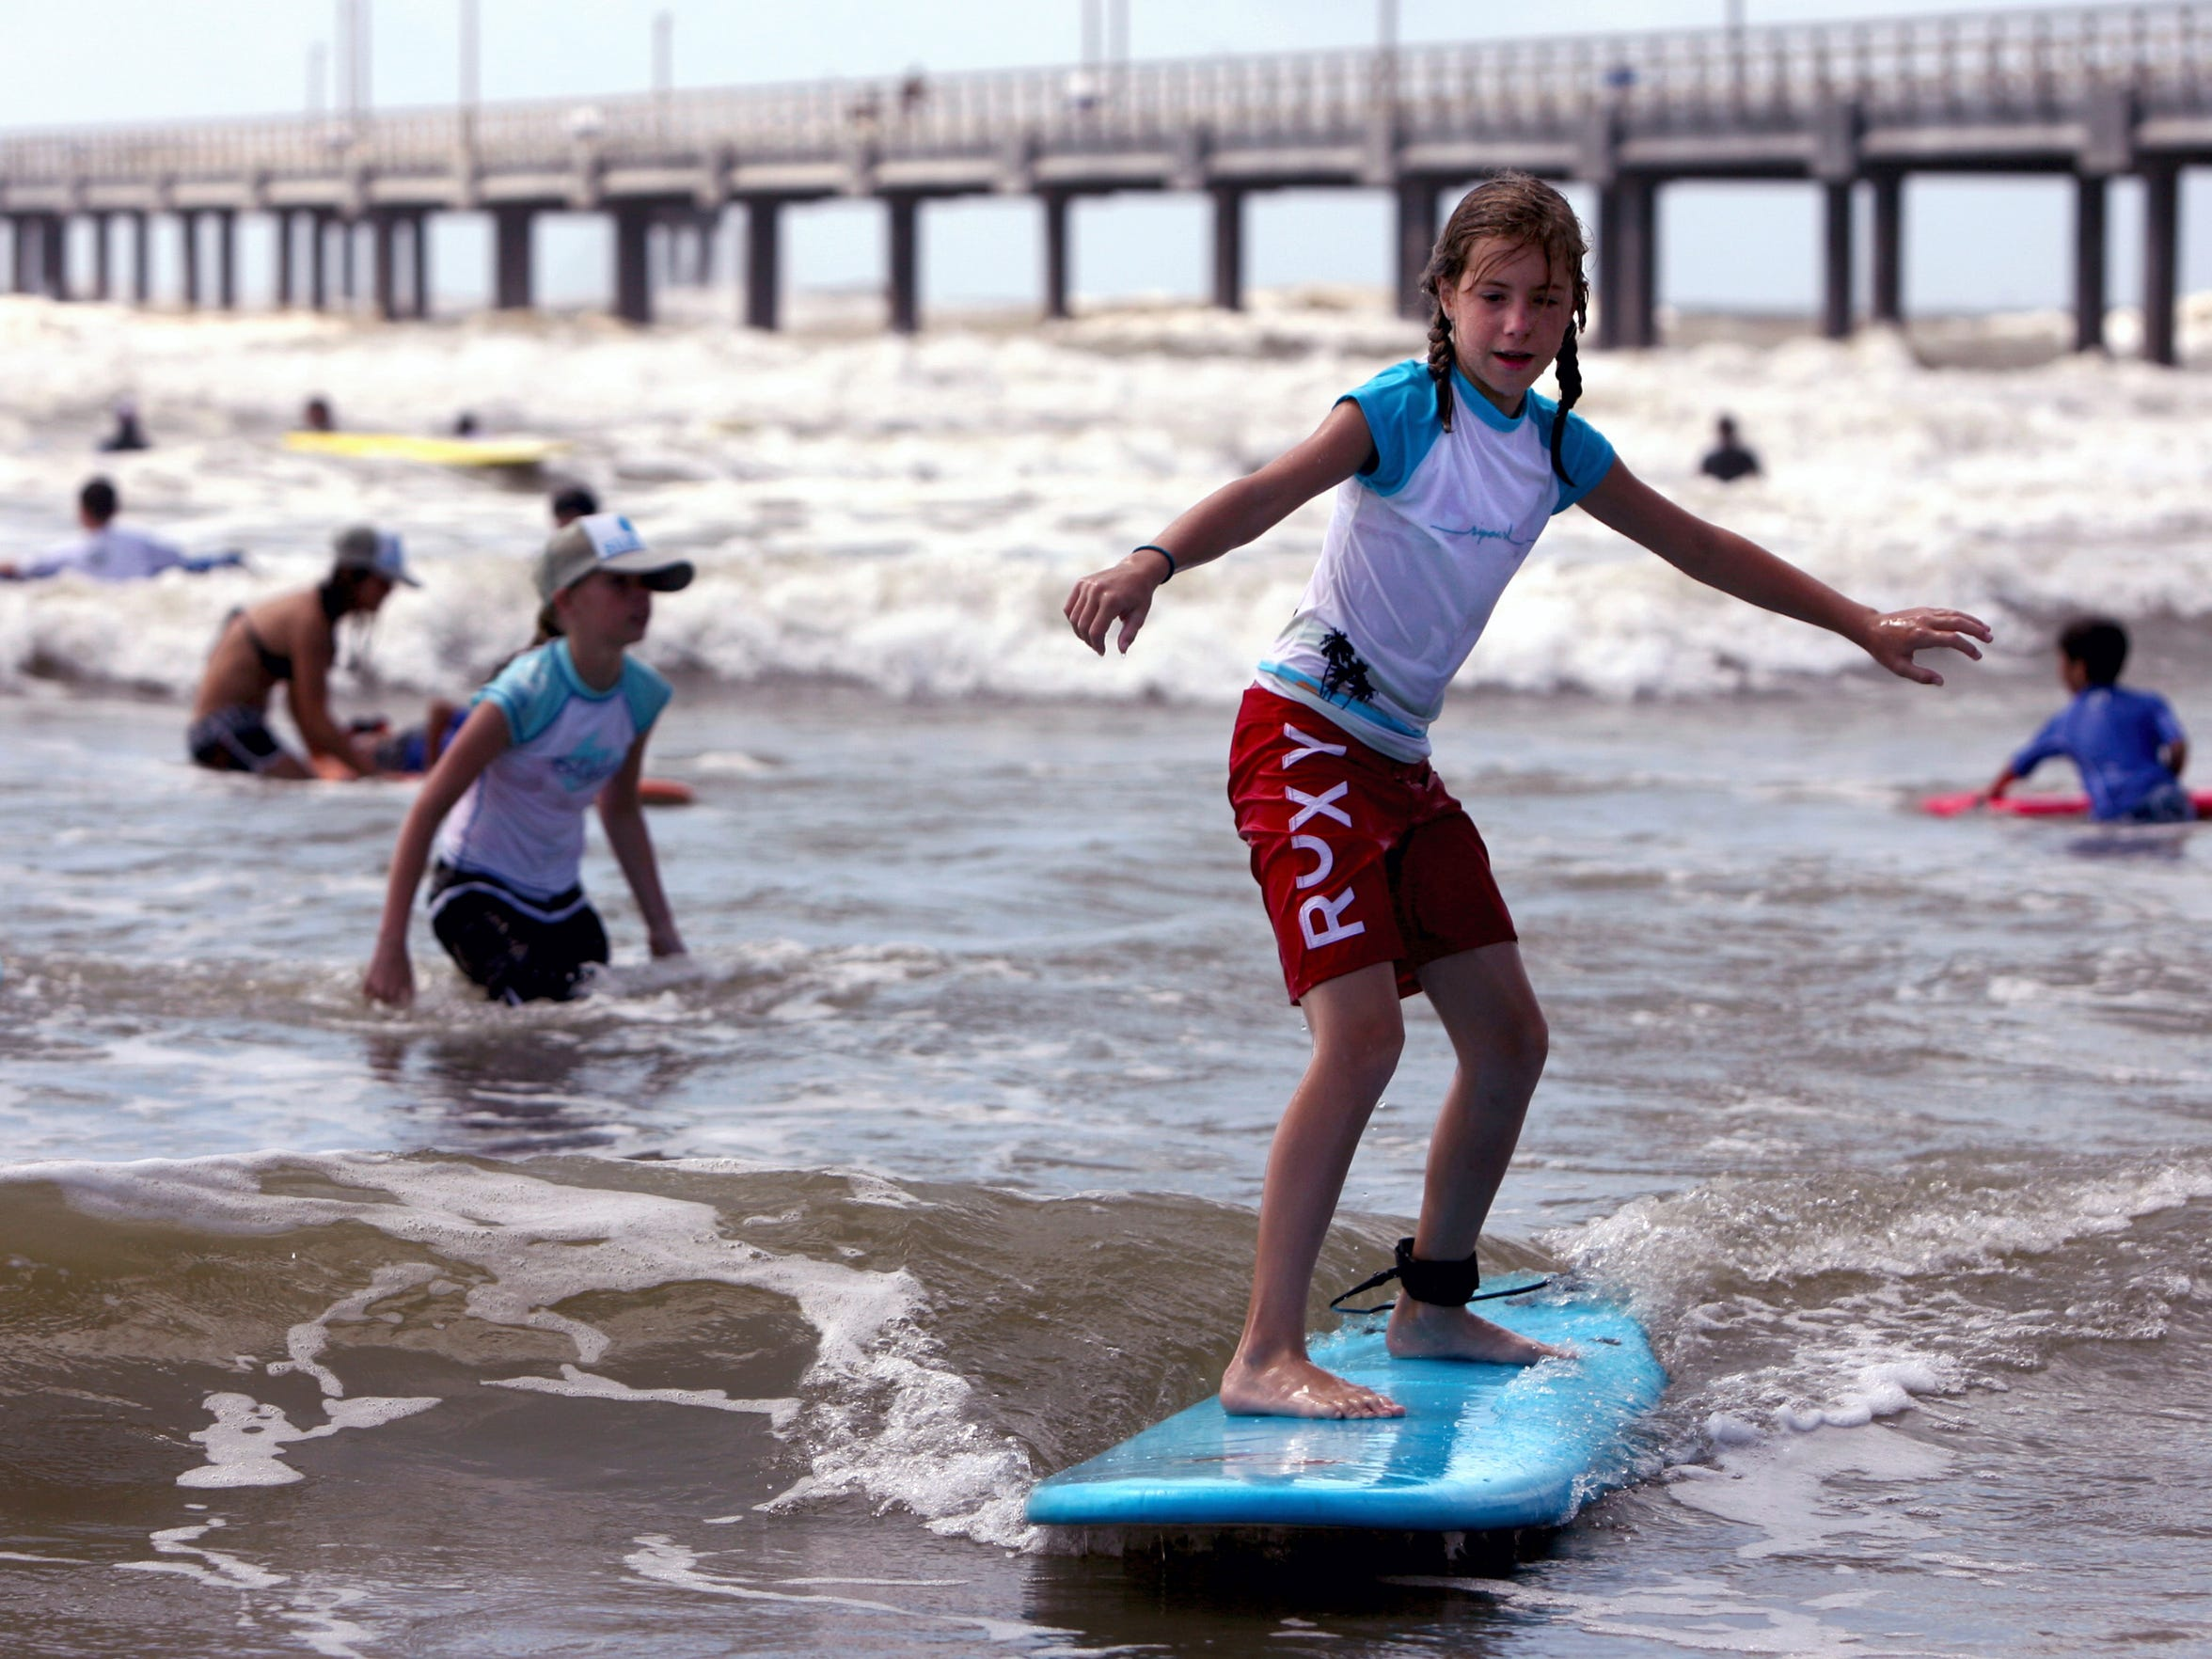 Texas Surf Camps offers weekly surfing camps through August for ages 6 and older at both Bob Hall Pier in Corpus Christi and Horace Caldwell Pier in Port Aransas.